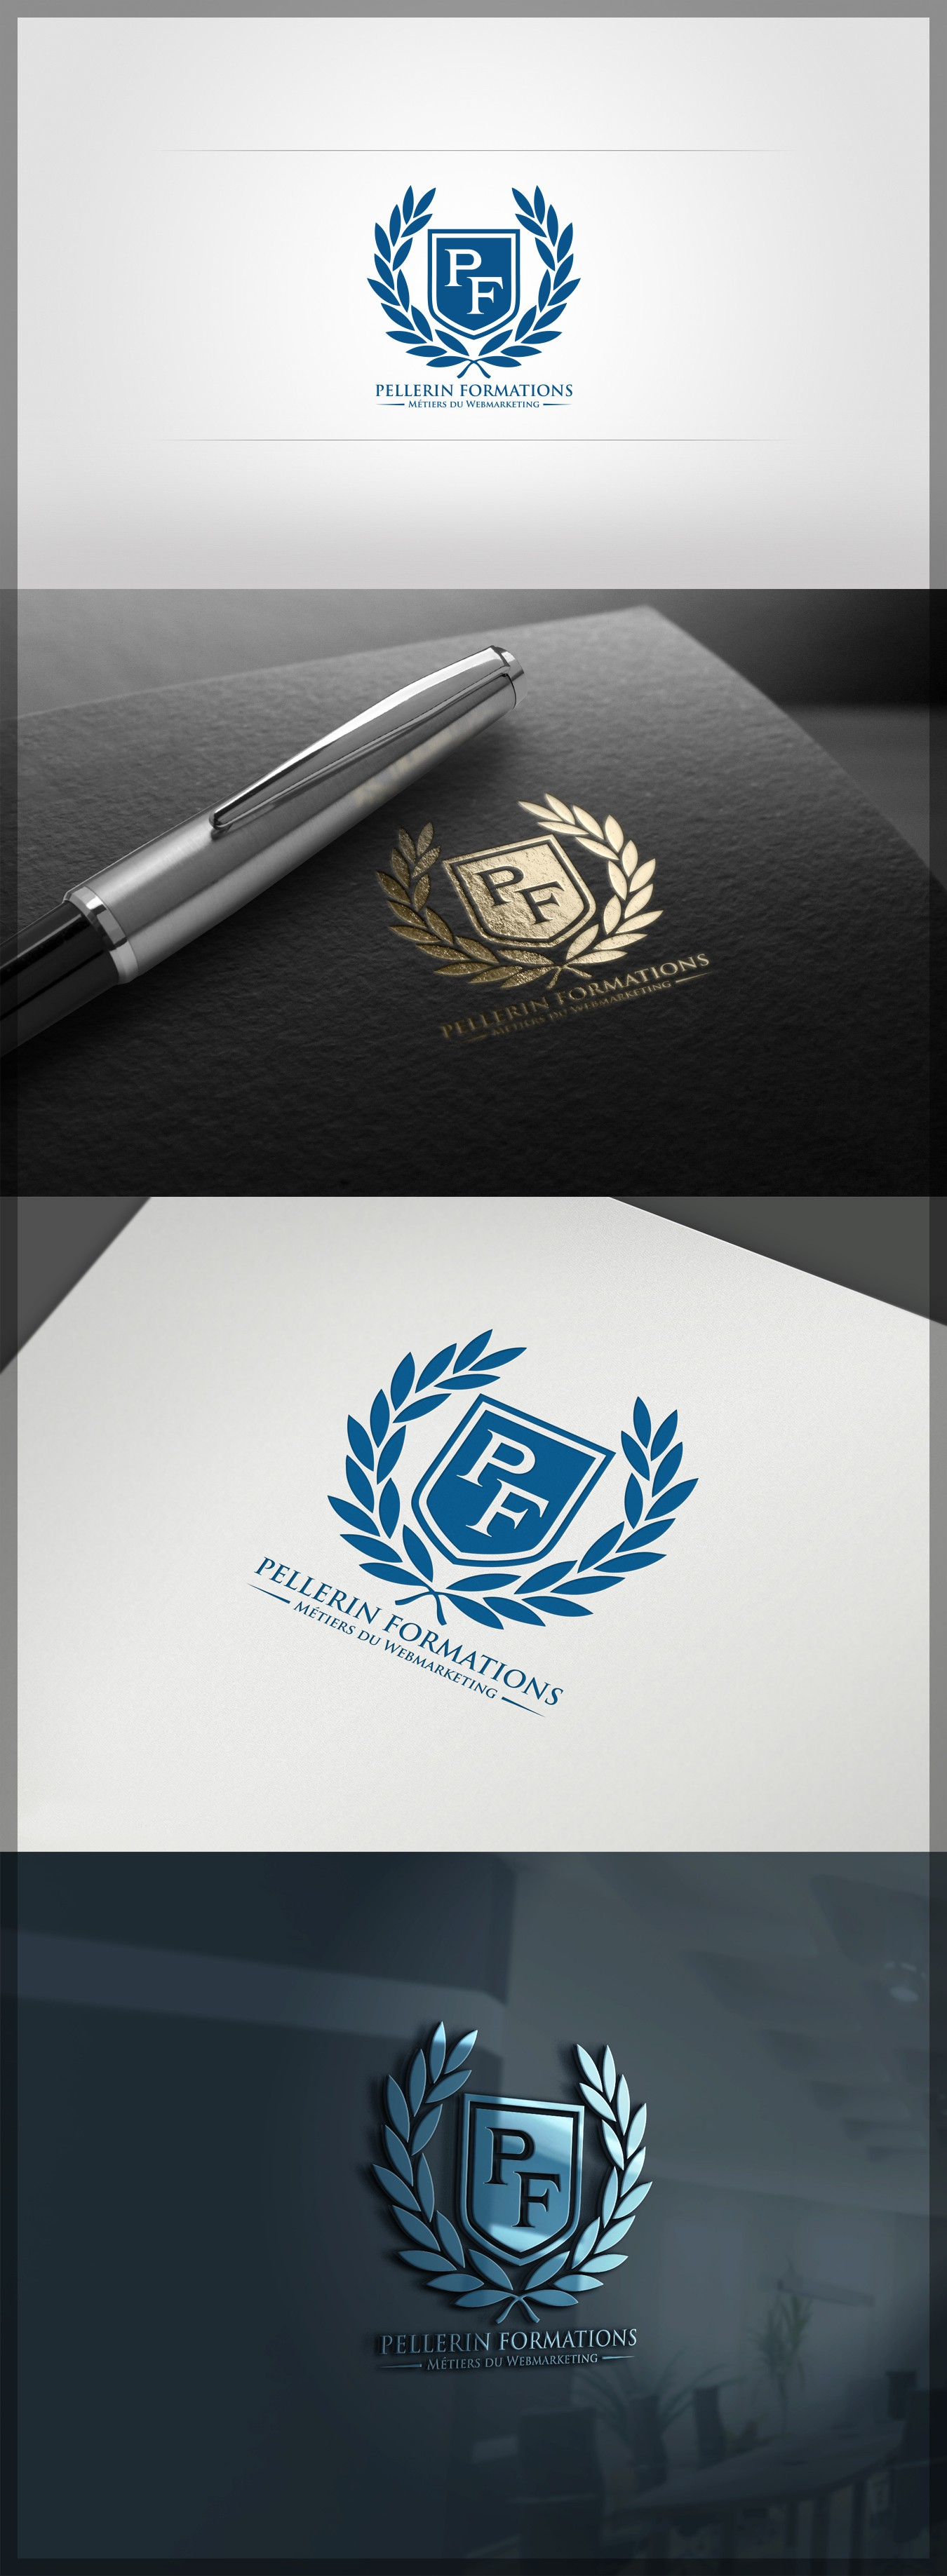 To create a logo for a training institute in webmarketing skills !